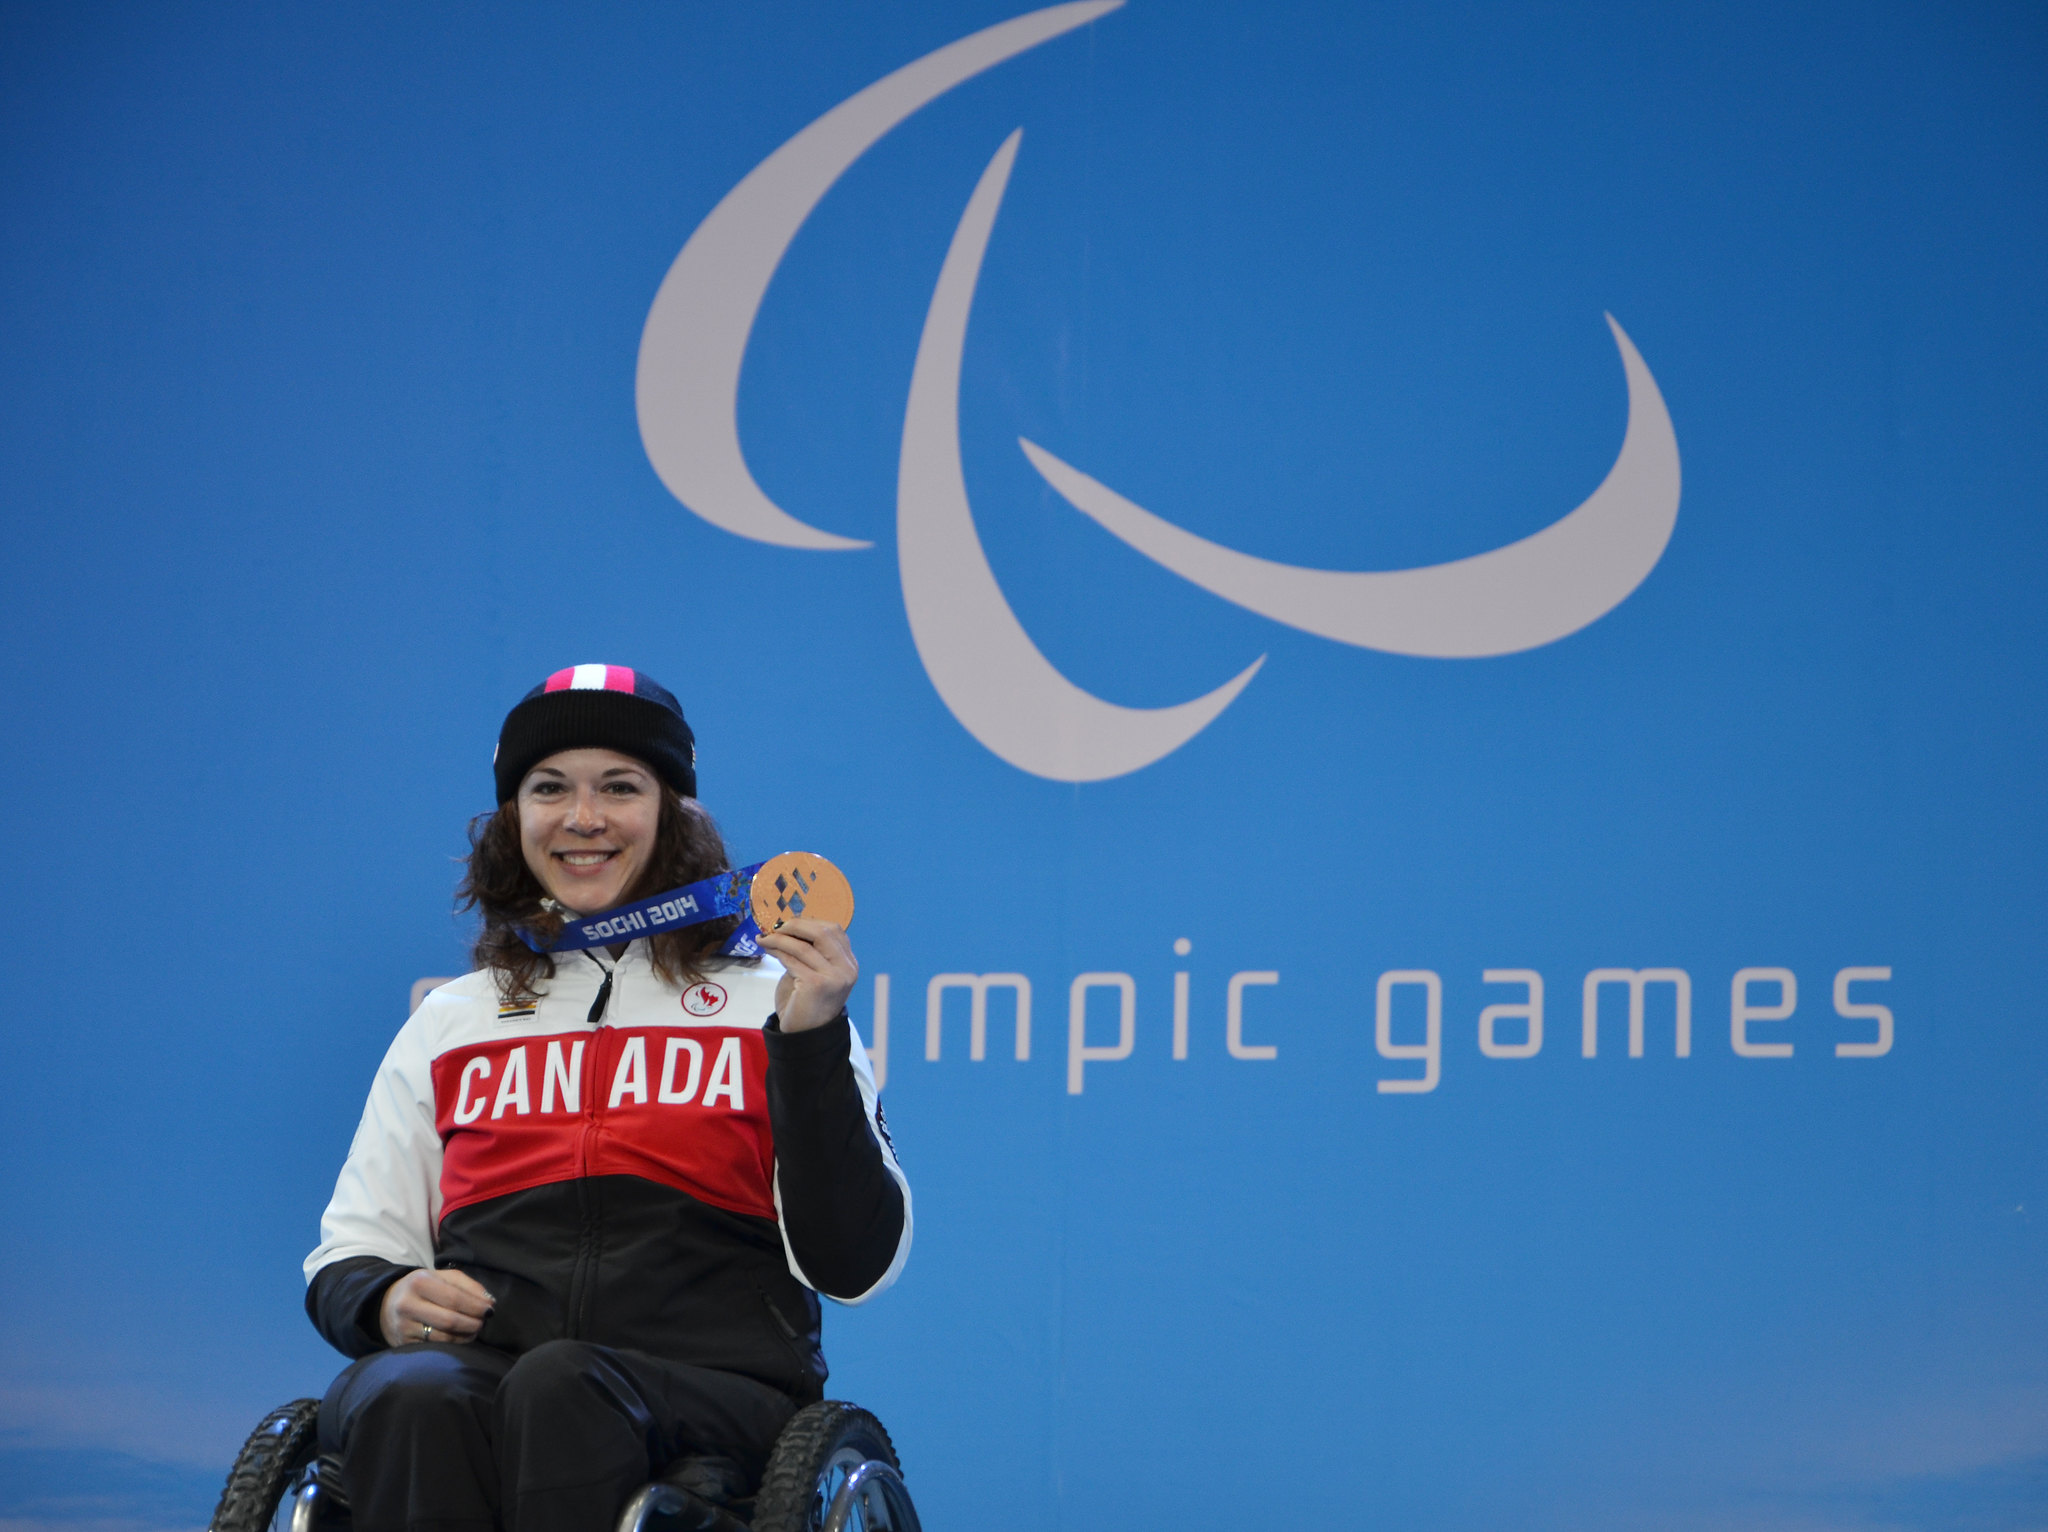 Kim Joines proudly shows off her bronze medal from the slalom event in Sochi, Russia